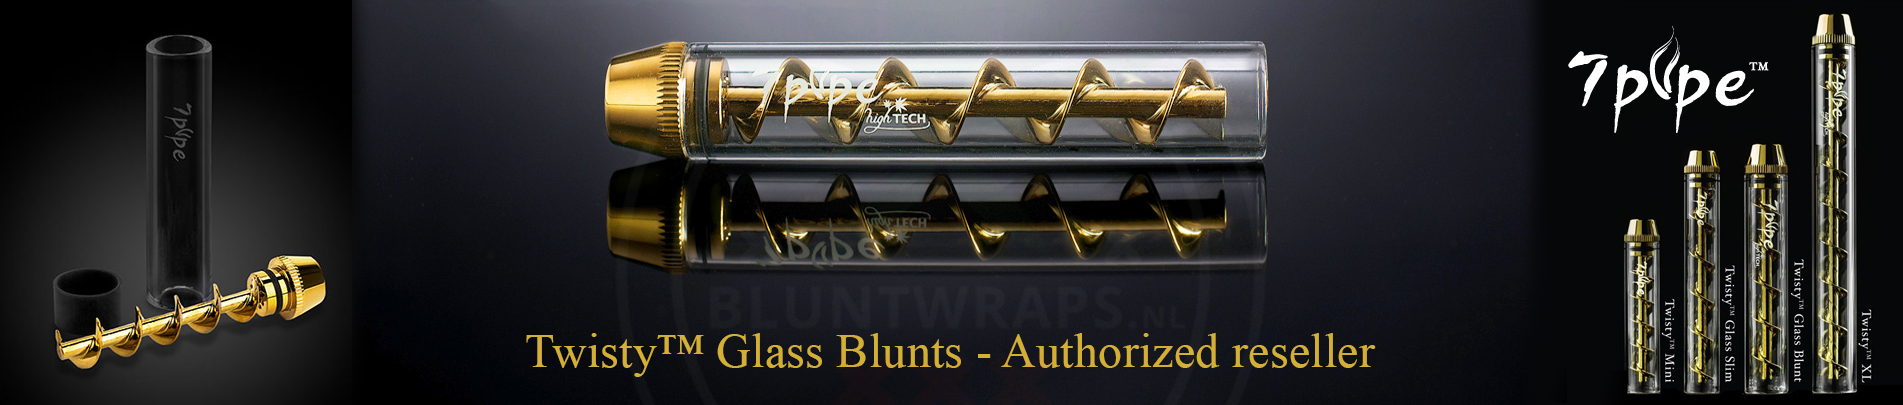 Twisty™ Glass Blunts - Authorized reseller